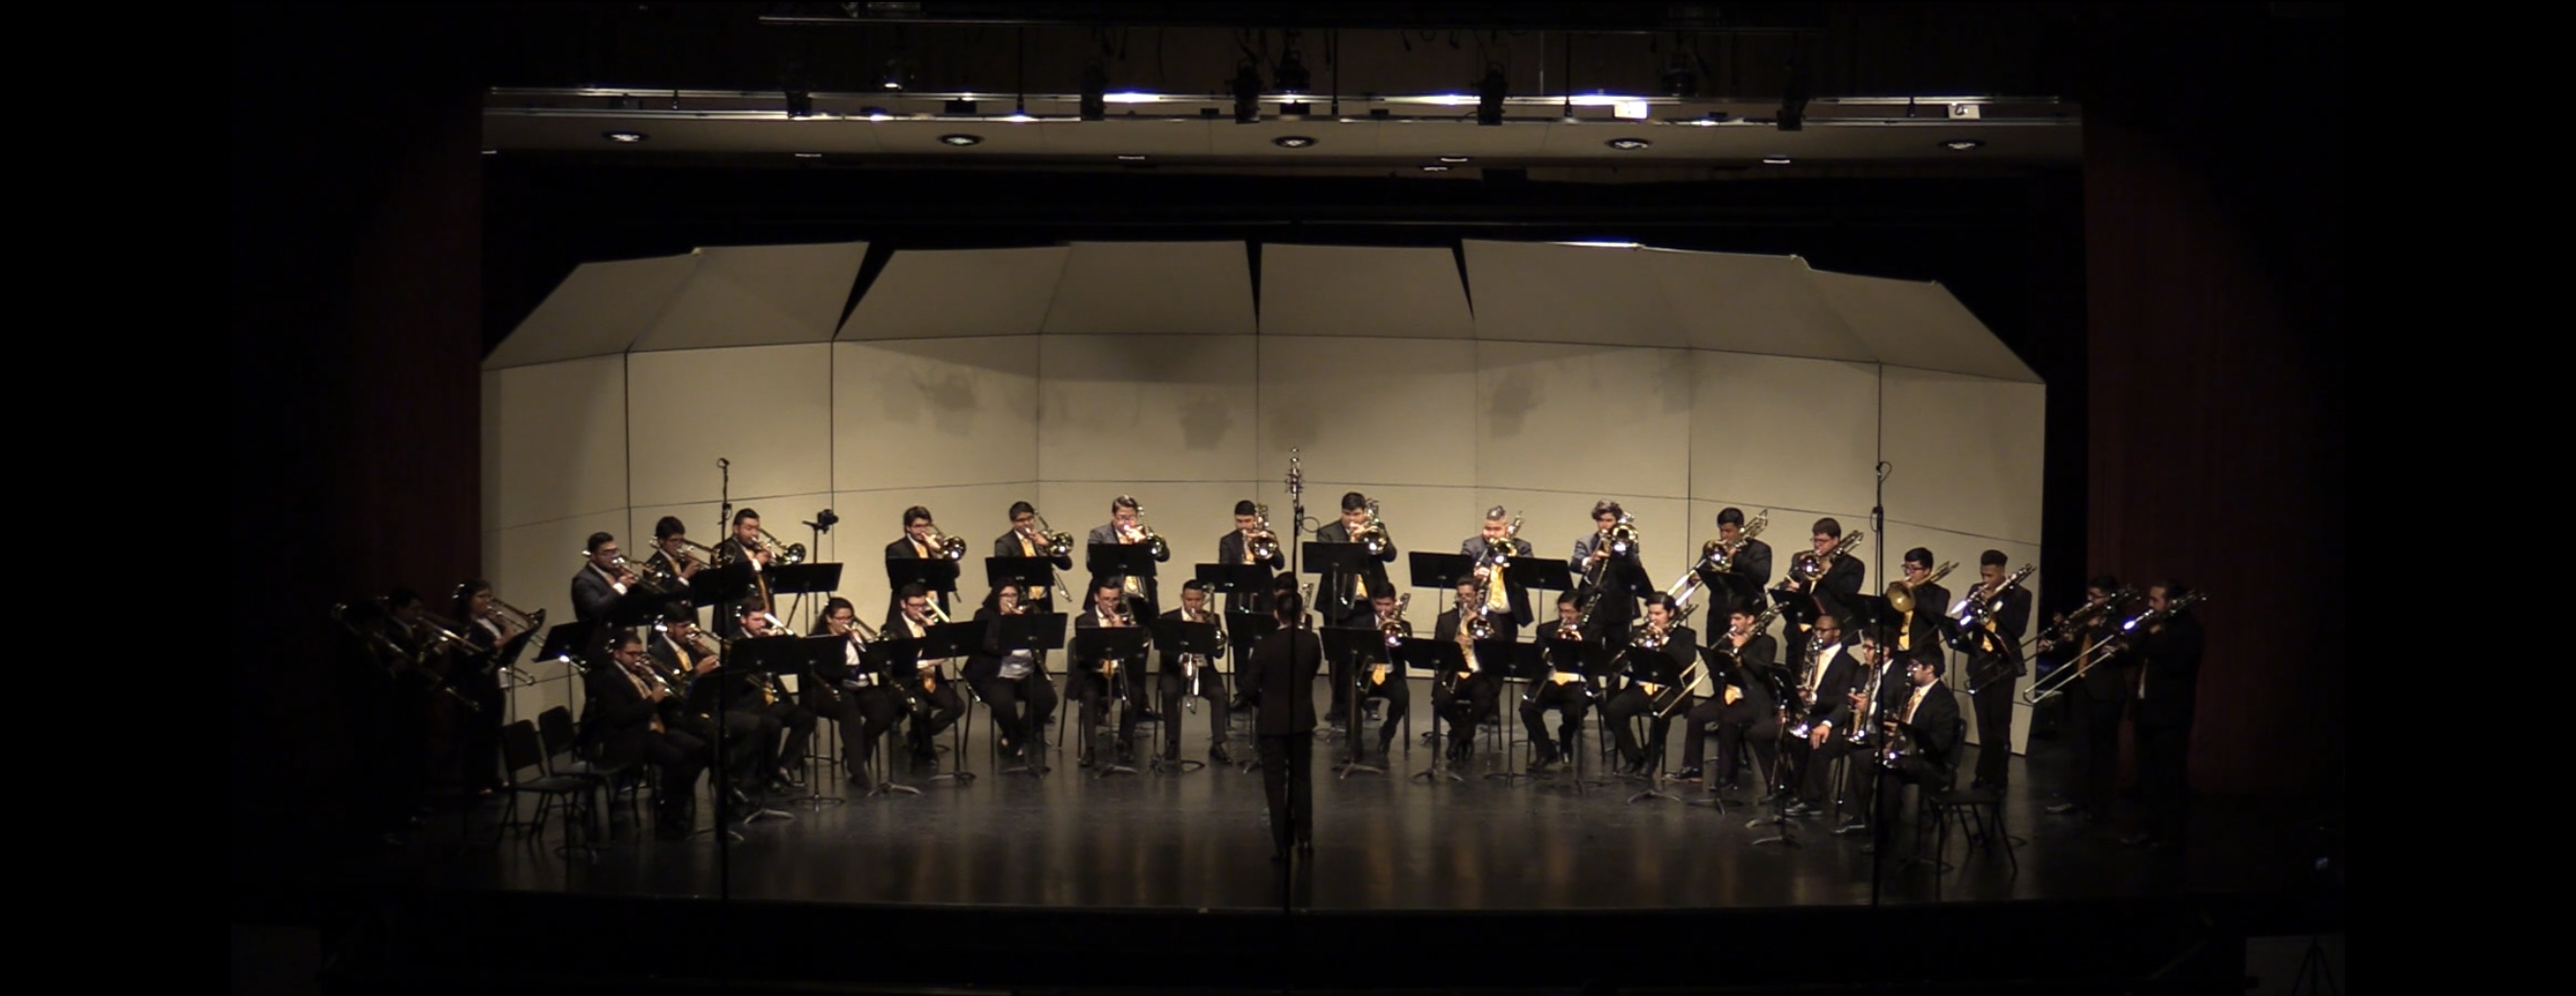 Texas A&M University-Kingsville Trombone Studio performs Joe Buono's Eclipse. Date of Performance: November 5, 2019 Conductor: Mr. Patrick Schmidt